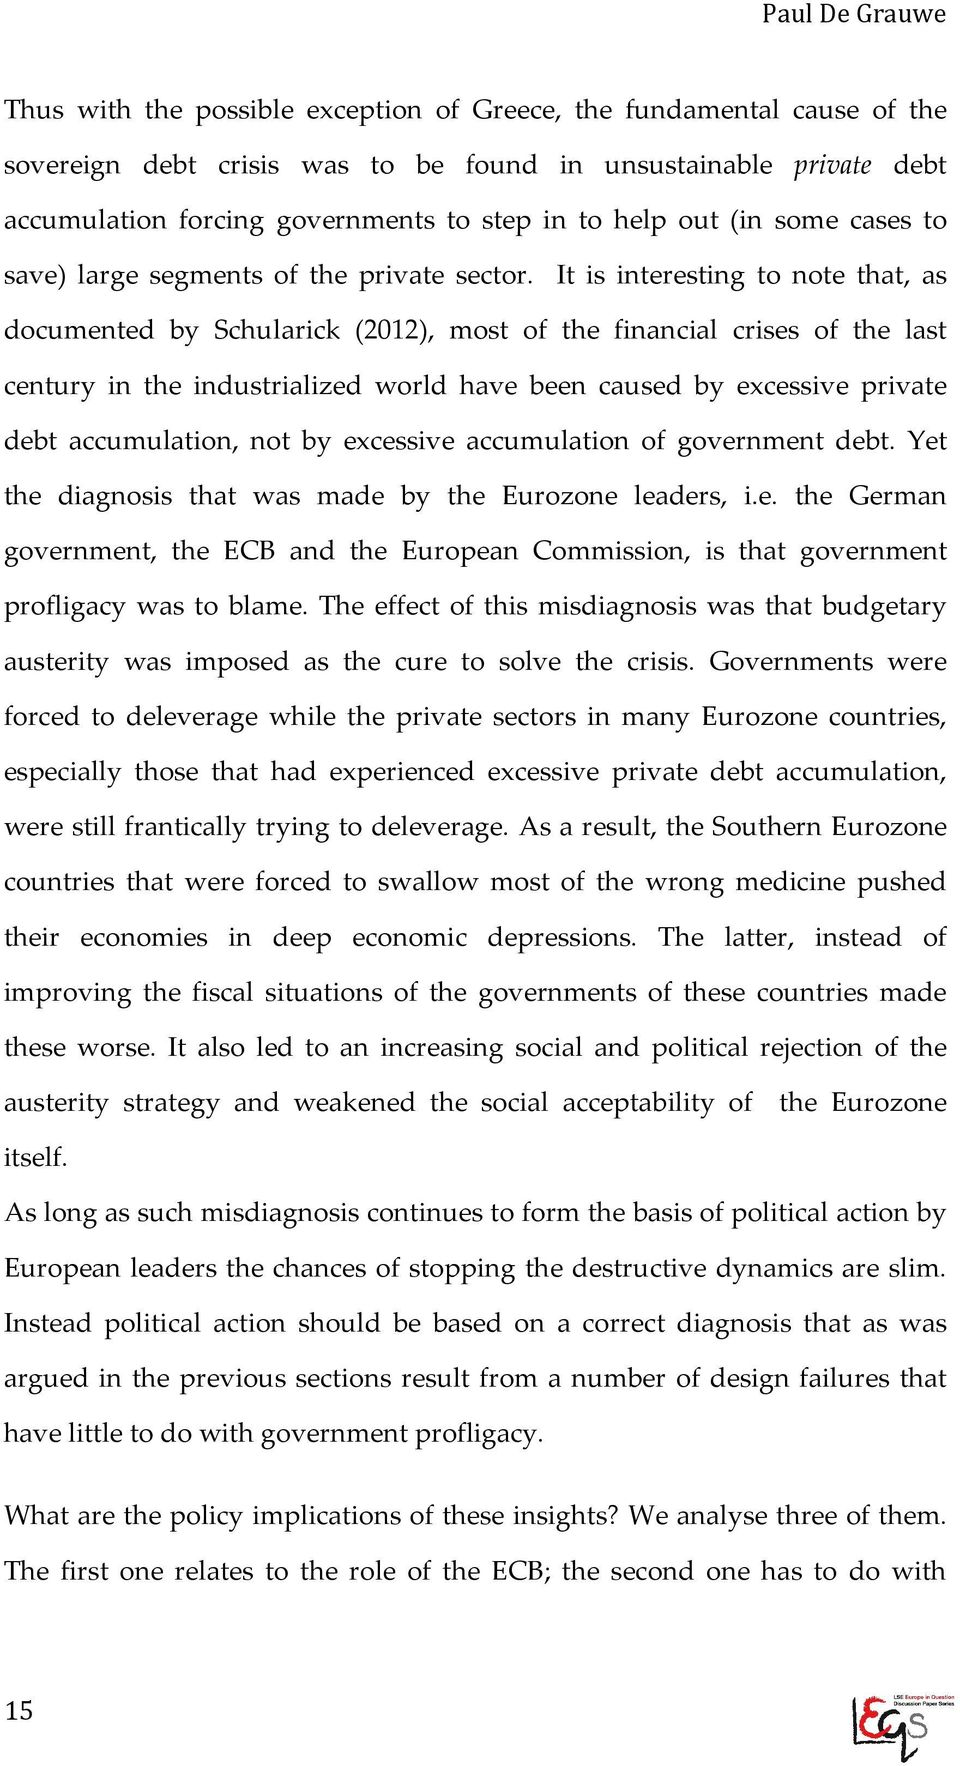 It is interesting to note that, as documented by Schularick (2012), most of the financial crises of the last century in the industrialized world have been caused by excessive private debt